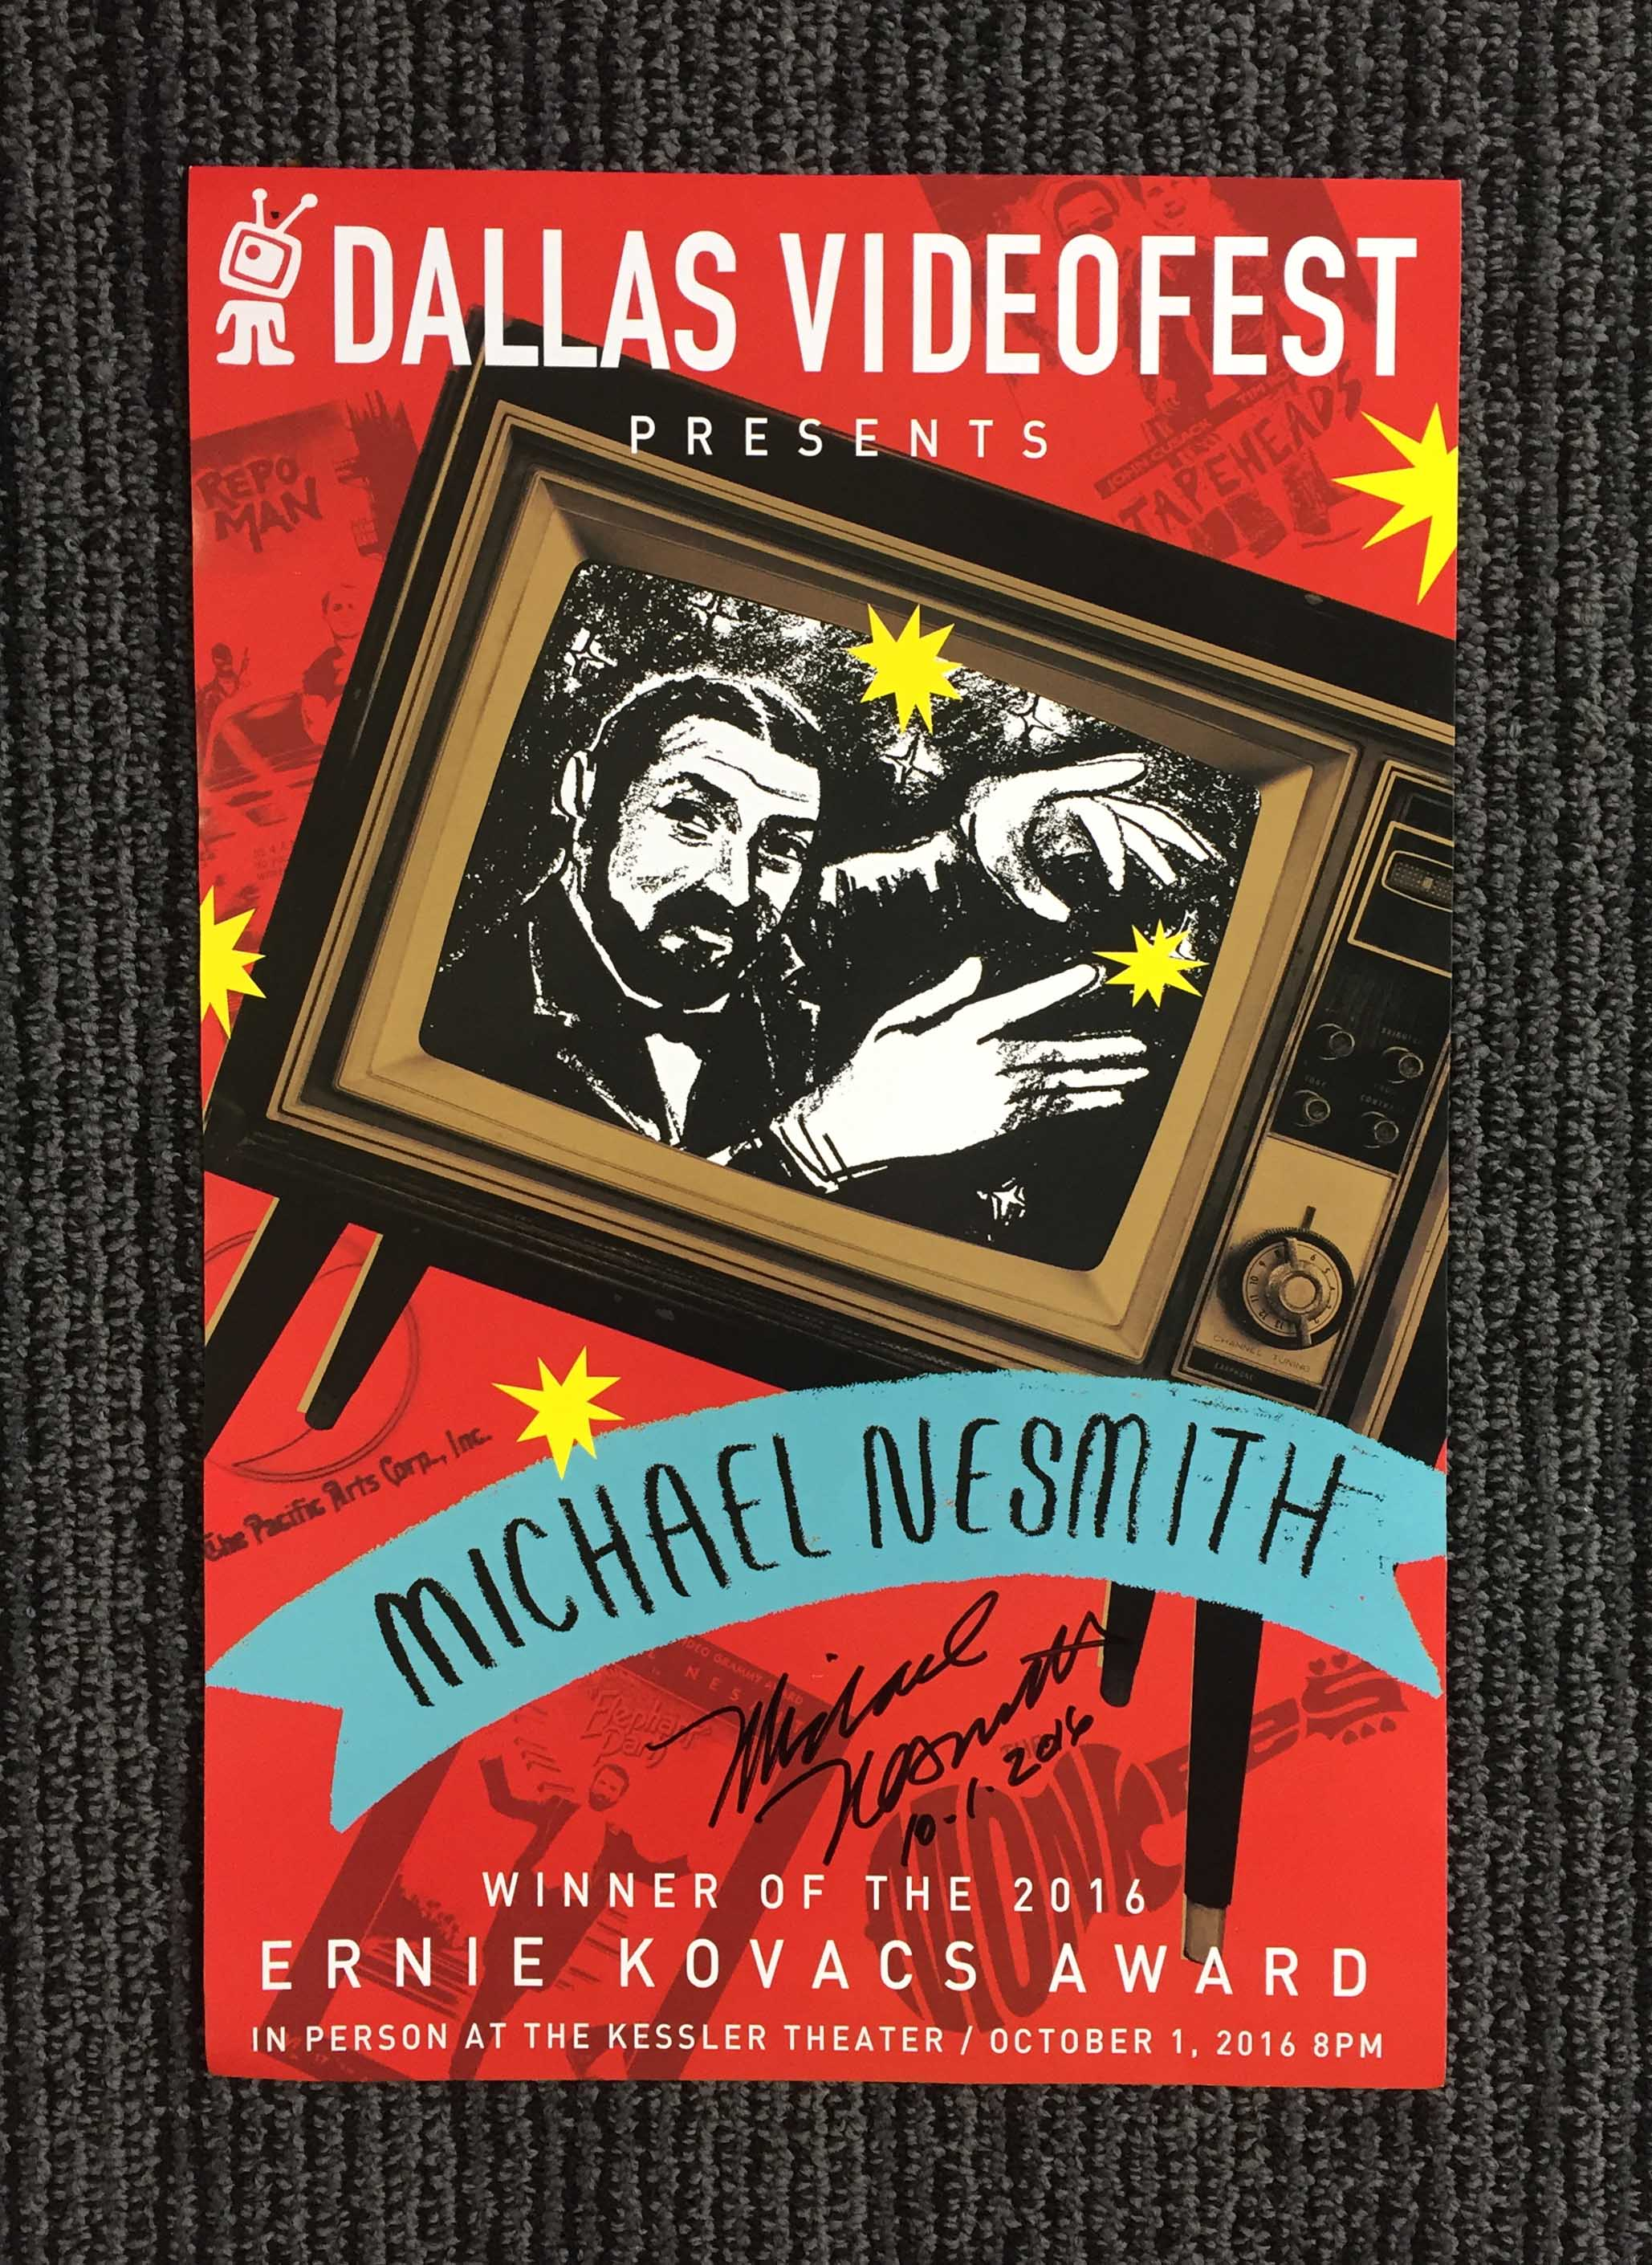 Dallas Videofest | Michael Nesmith | Ernie Kovacs Award